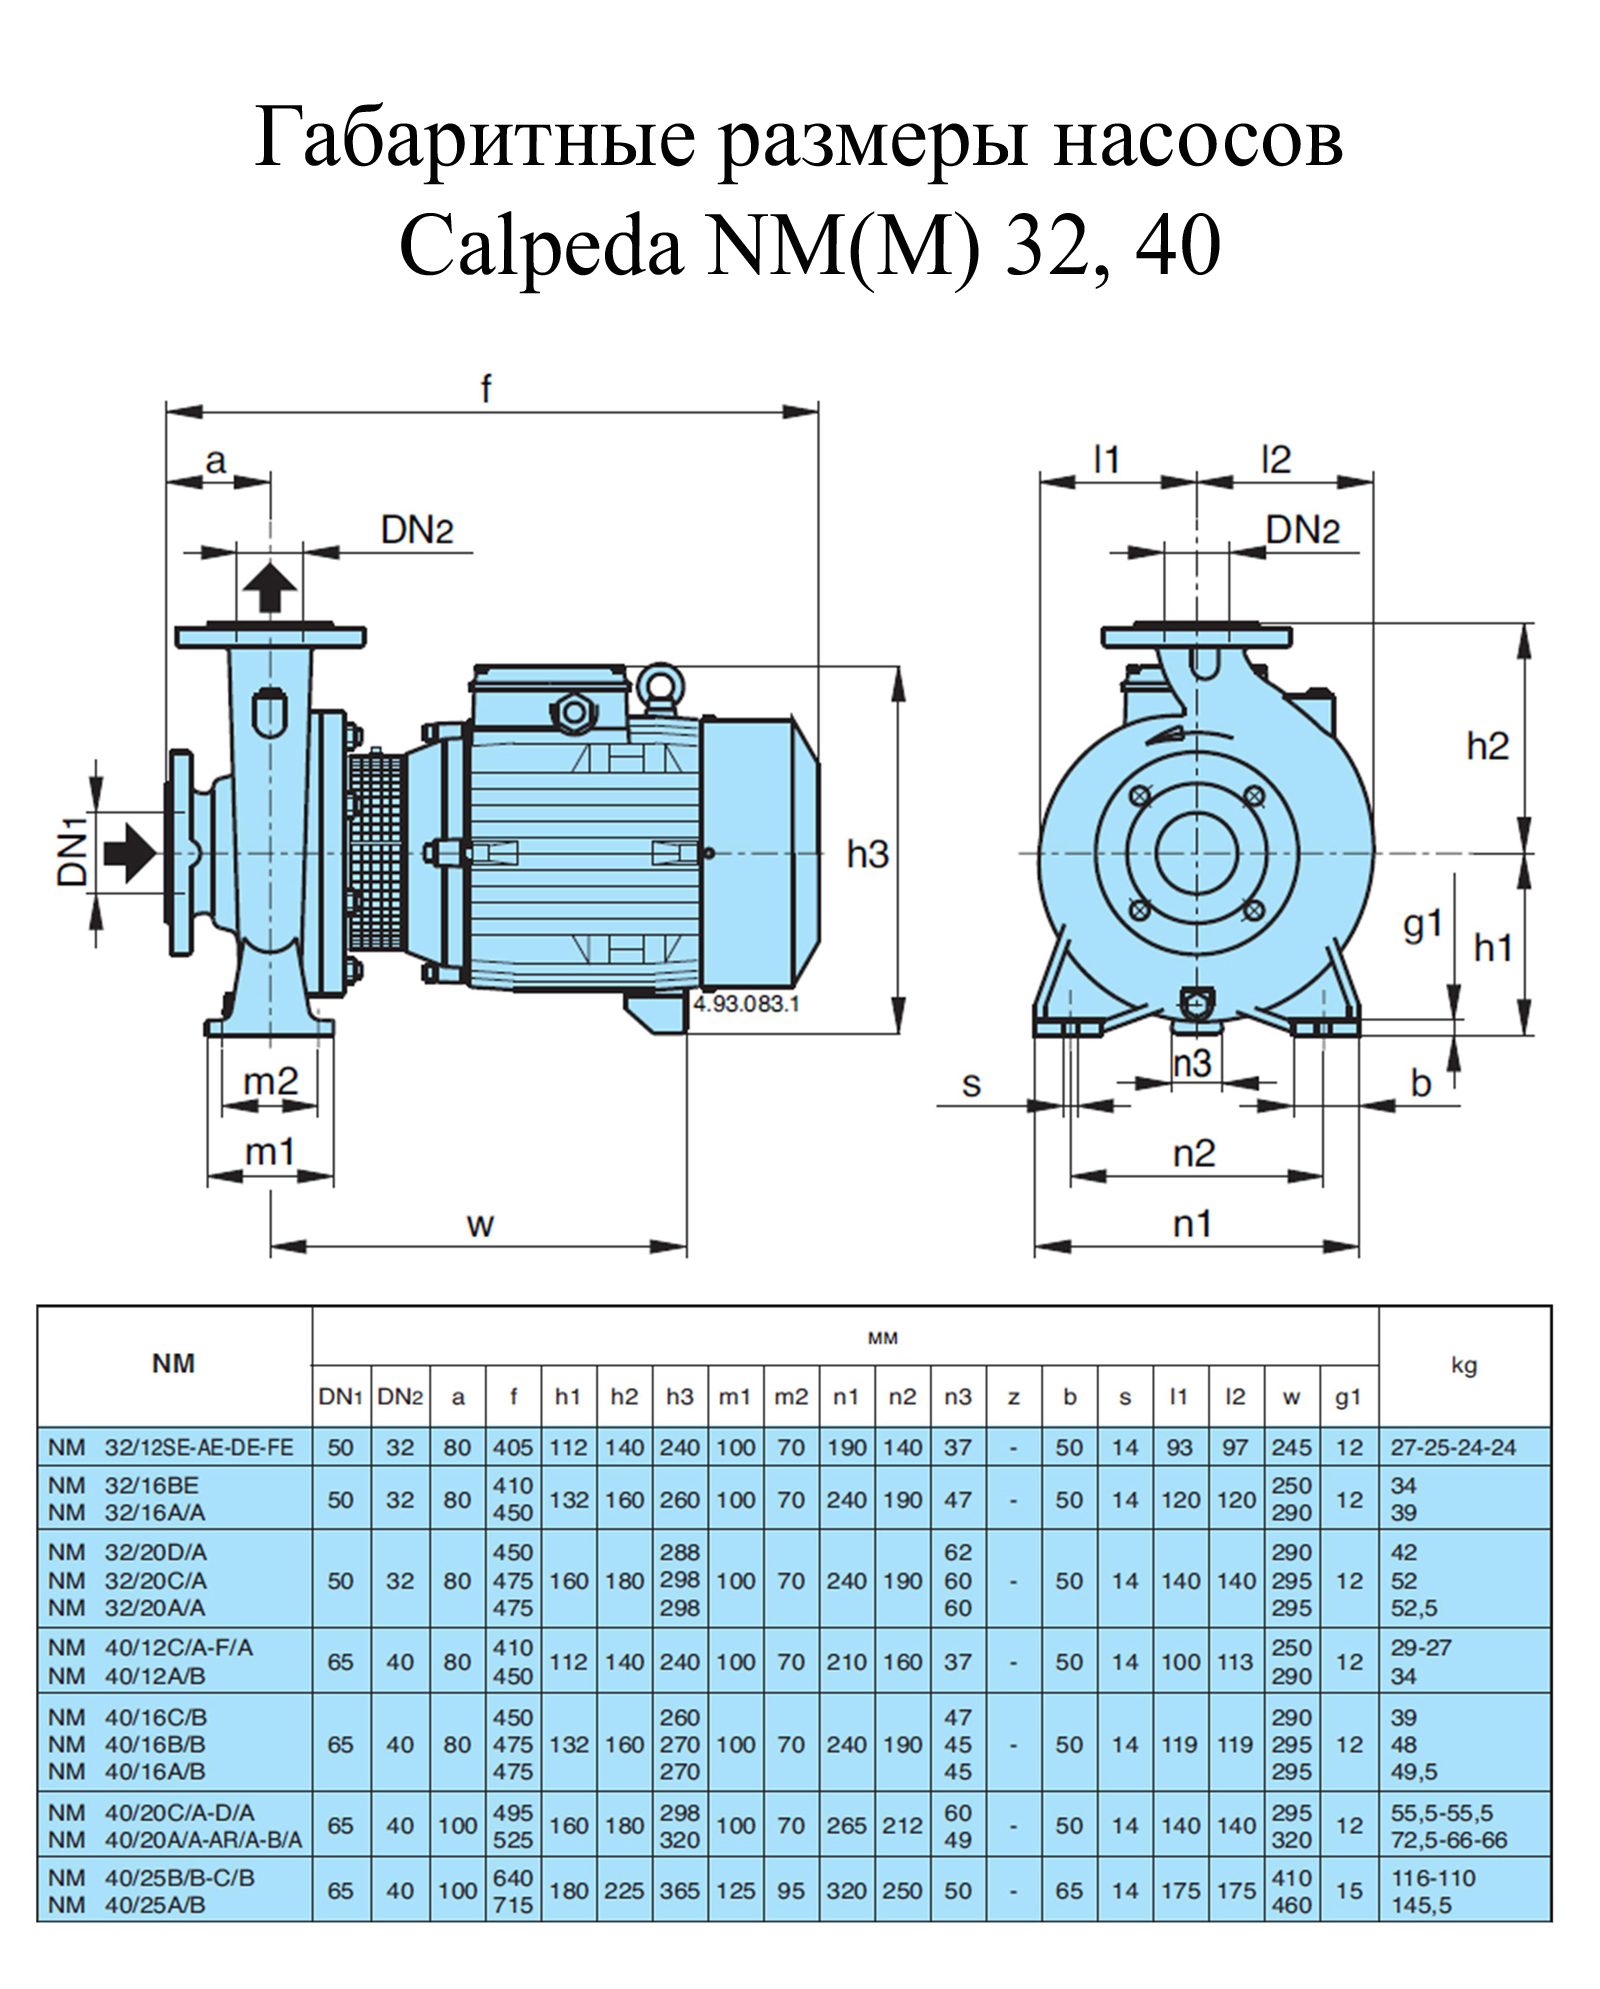 ����� ������������� Calpeda NM 40/25A/B